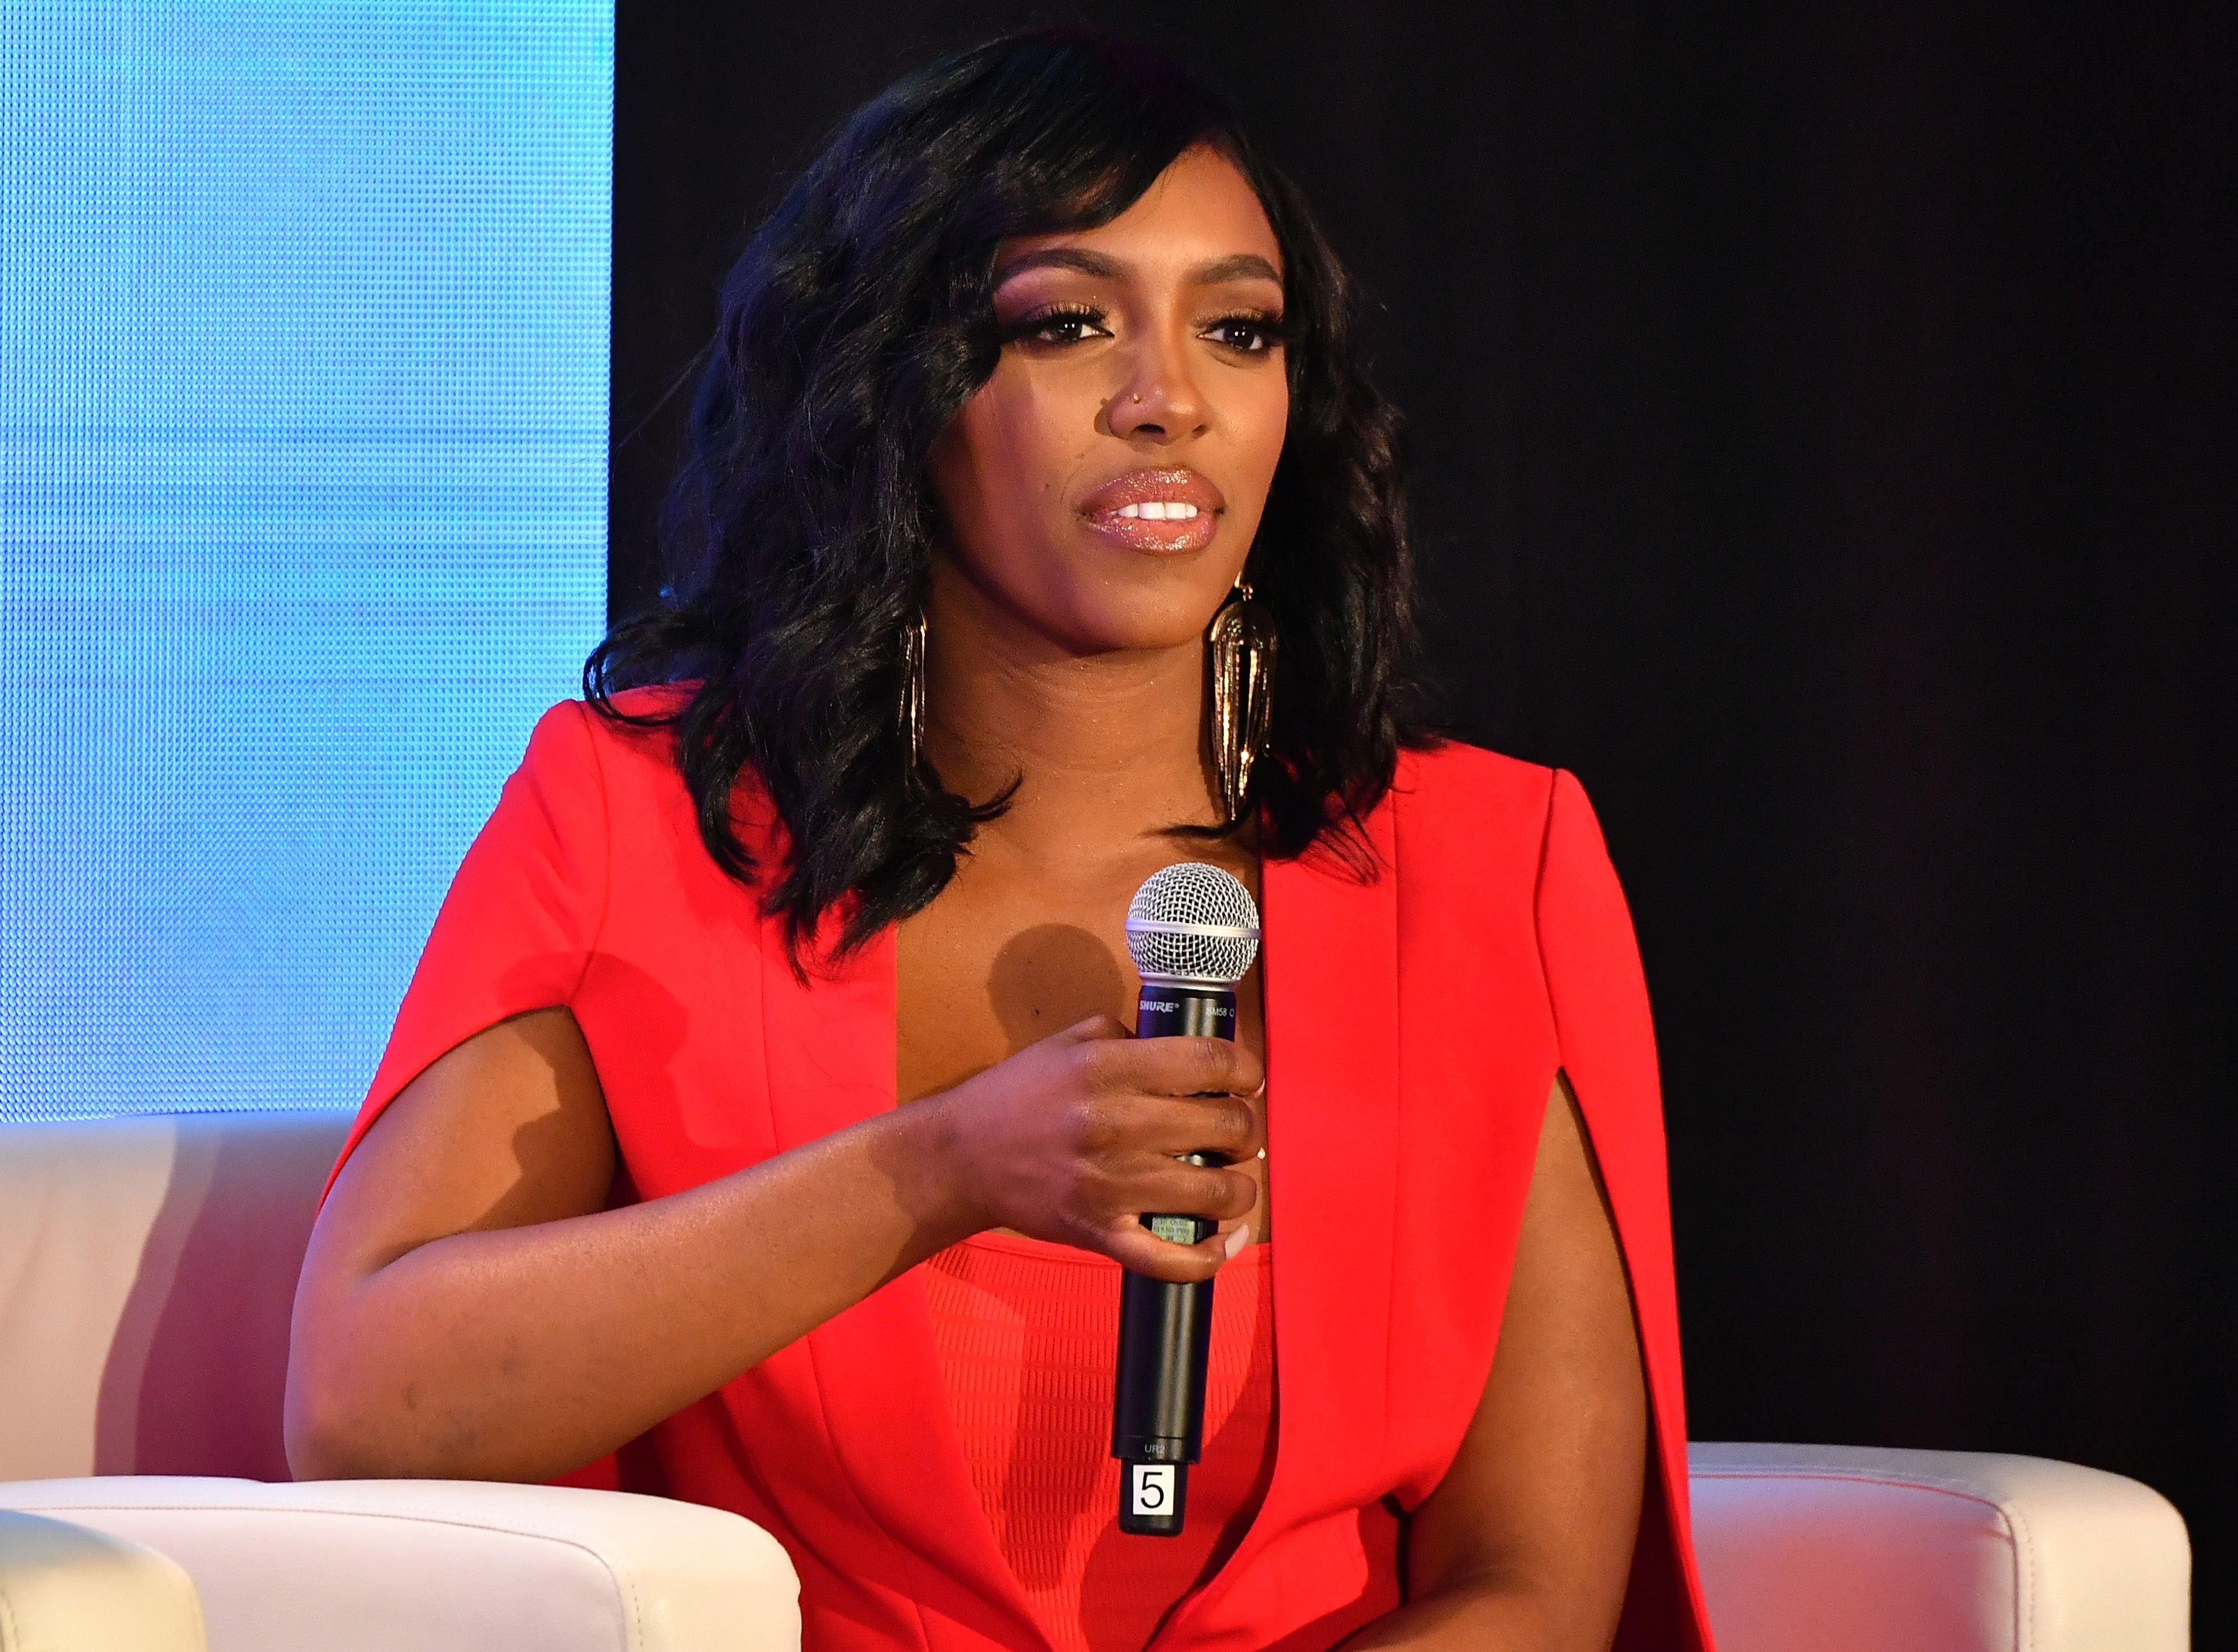 Porsha Williams onstage during A3C Festival & Conference on Oct. 10, 2019 in Atlanta, Georgia. | Source: Getty Images